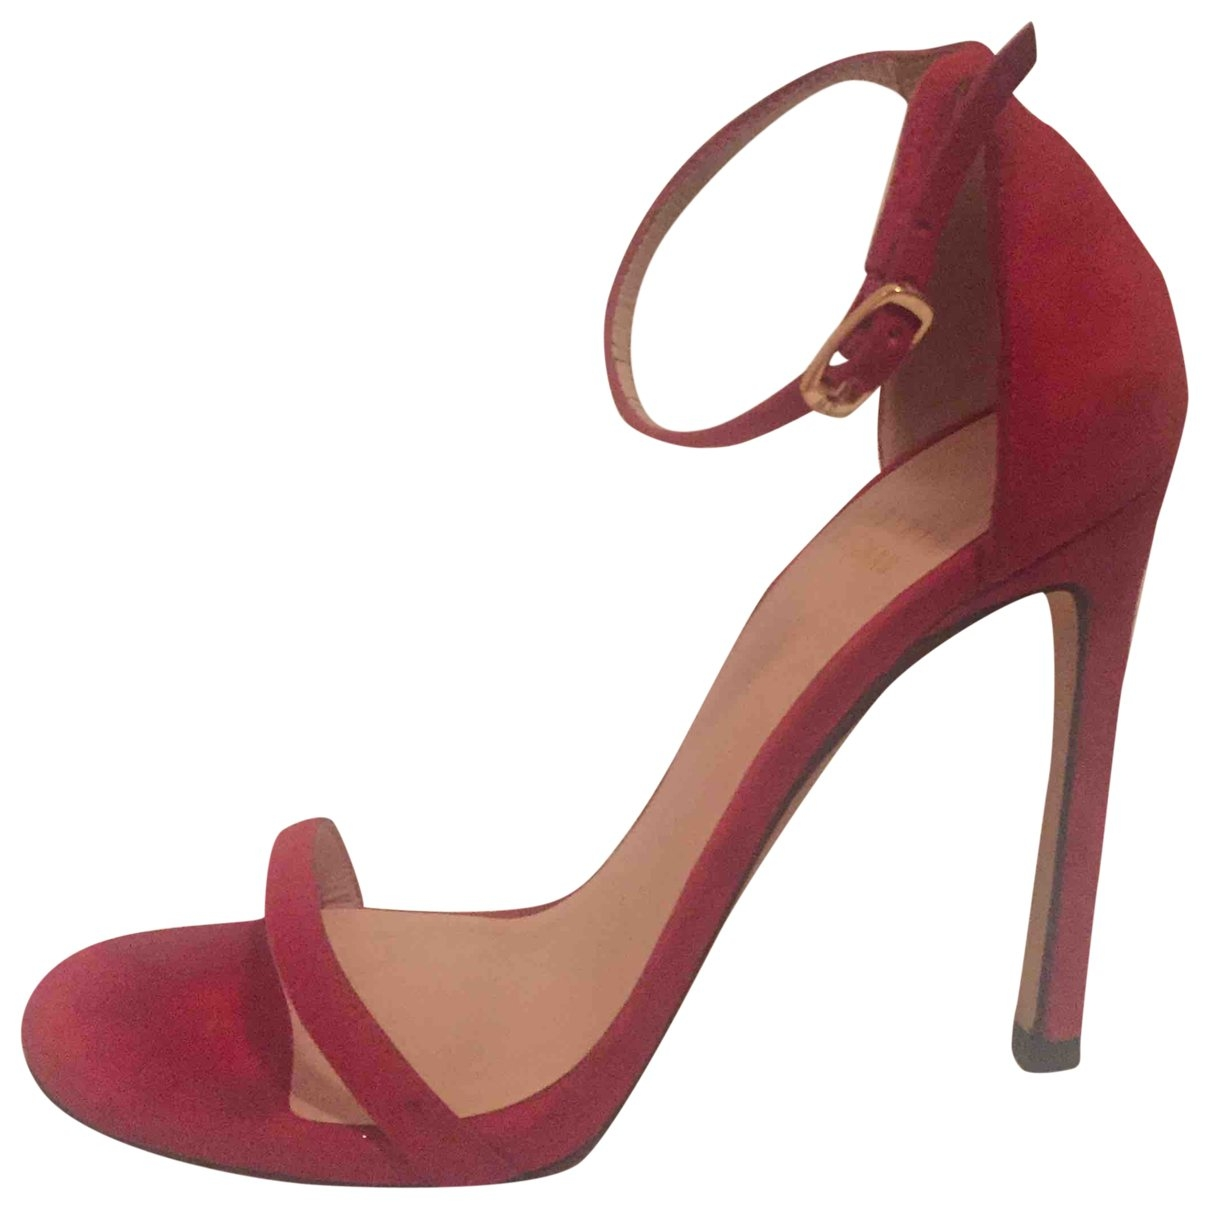 Stuart Weitzman \N Red Suede Sandals for Women 36 EU